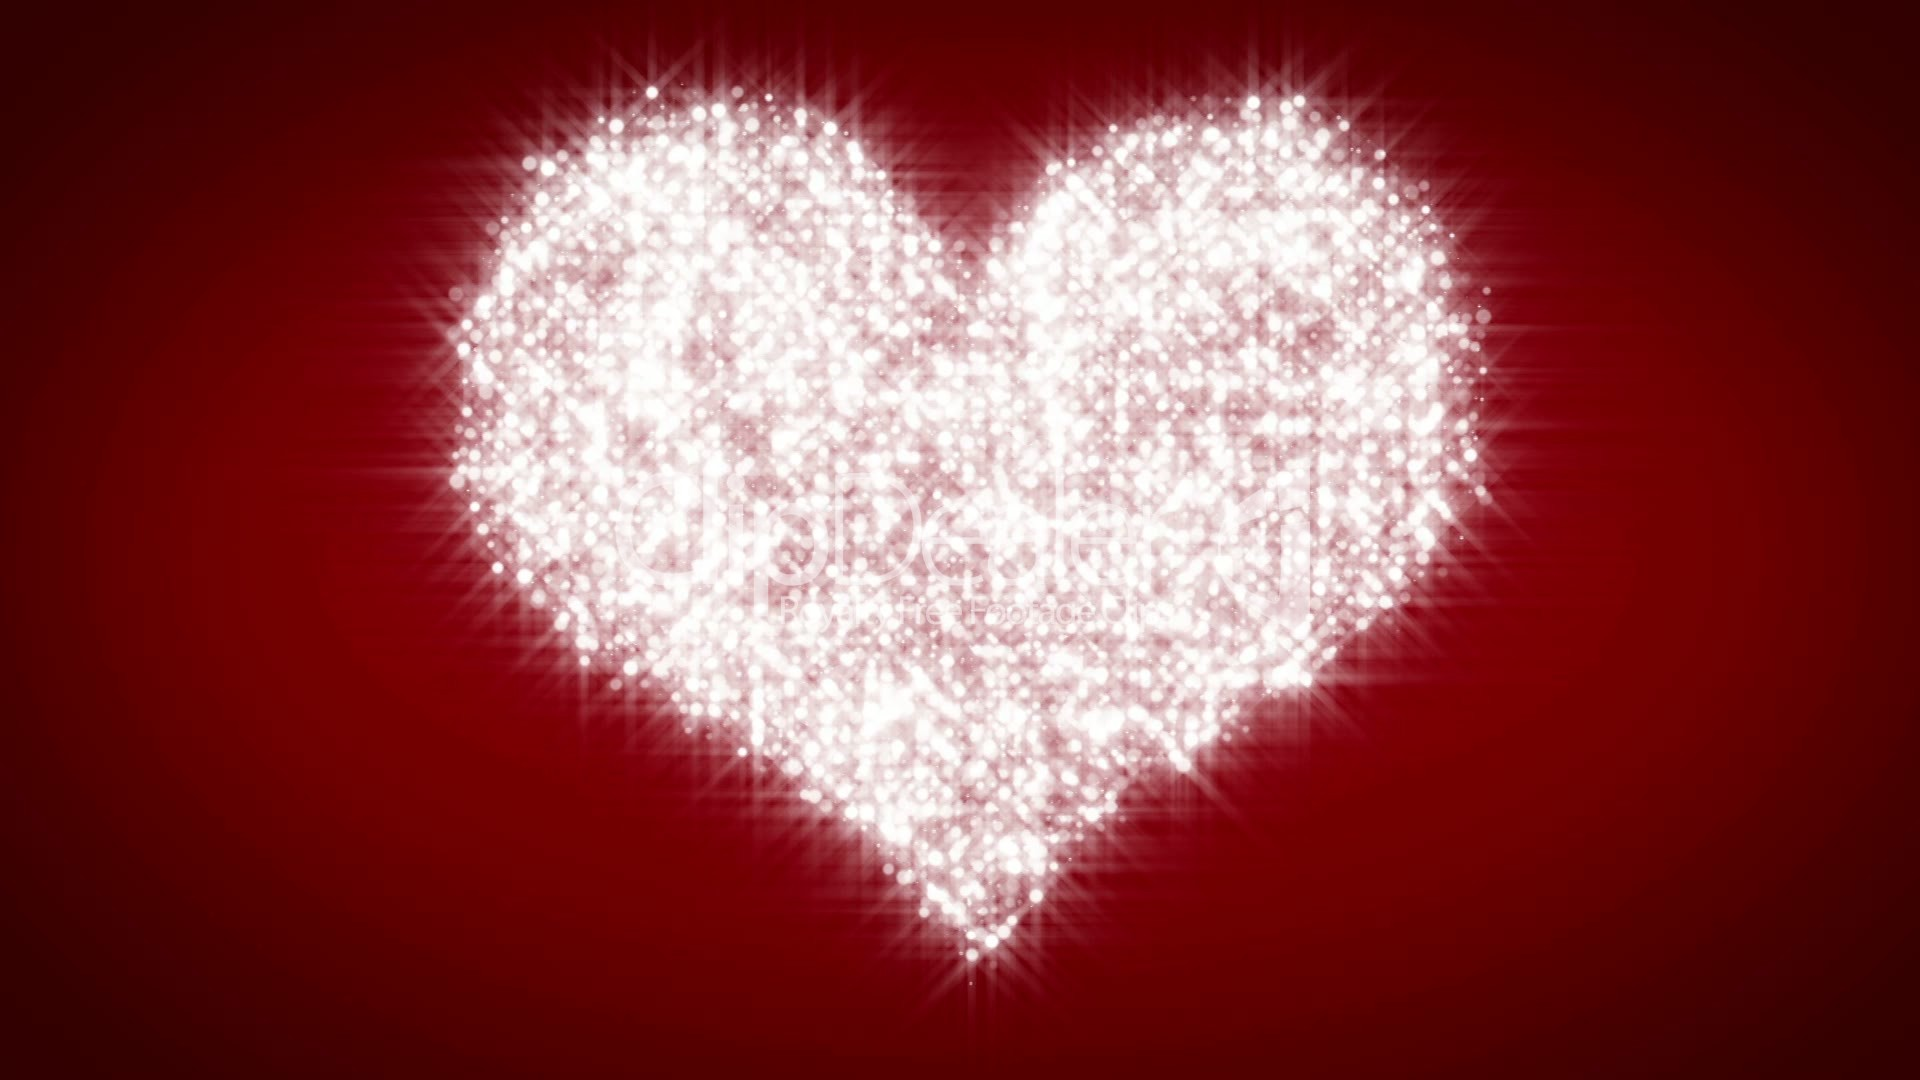 Cute Sparkly Pink Wallpapers White Heart Beating On Red Background Loop Royalty Free